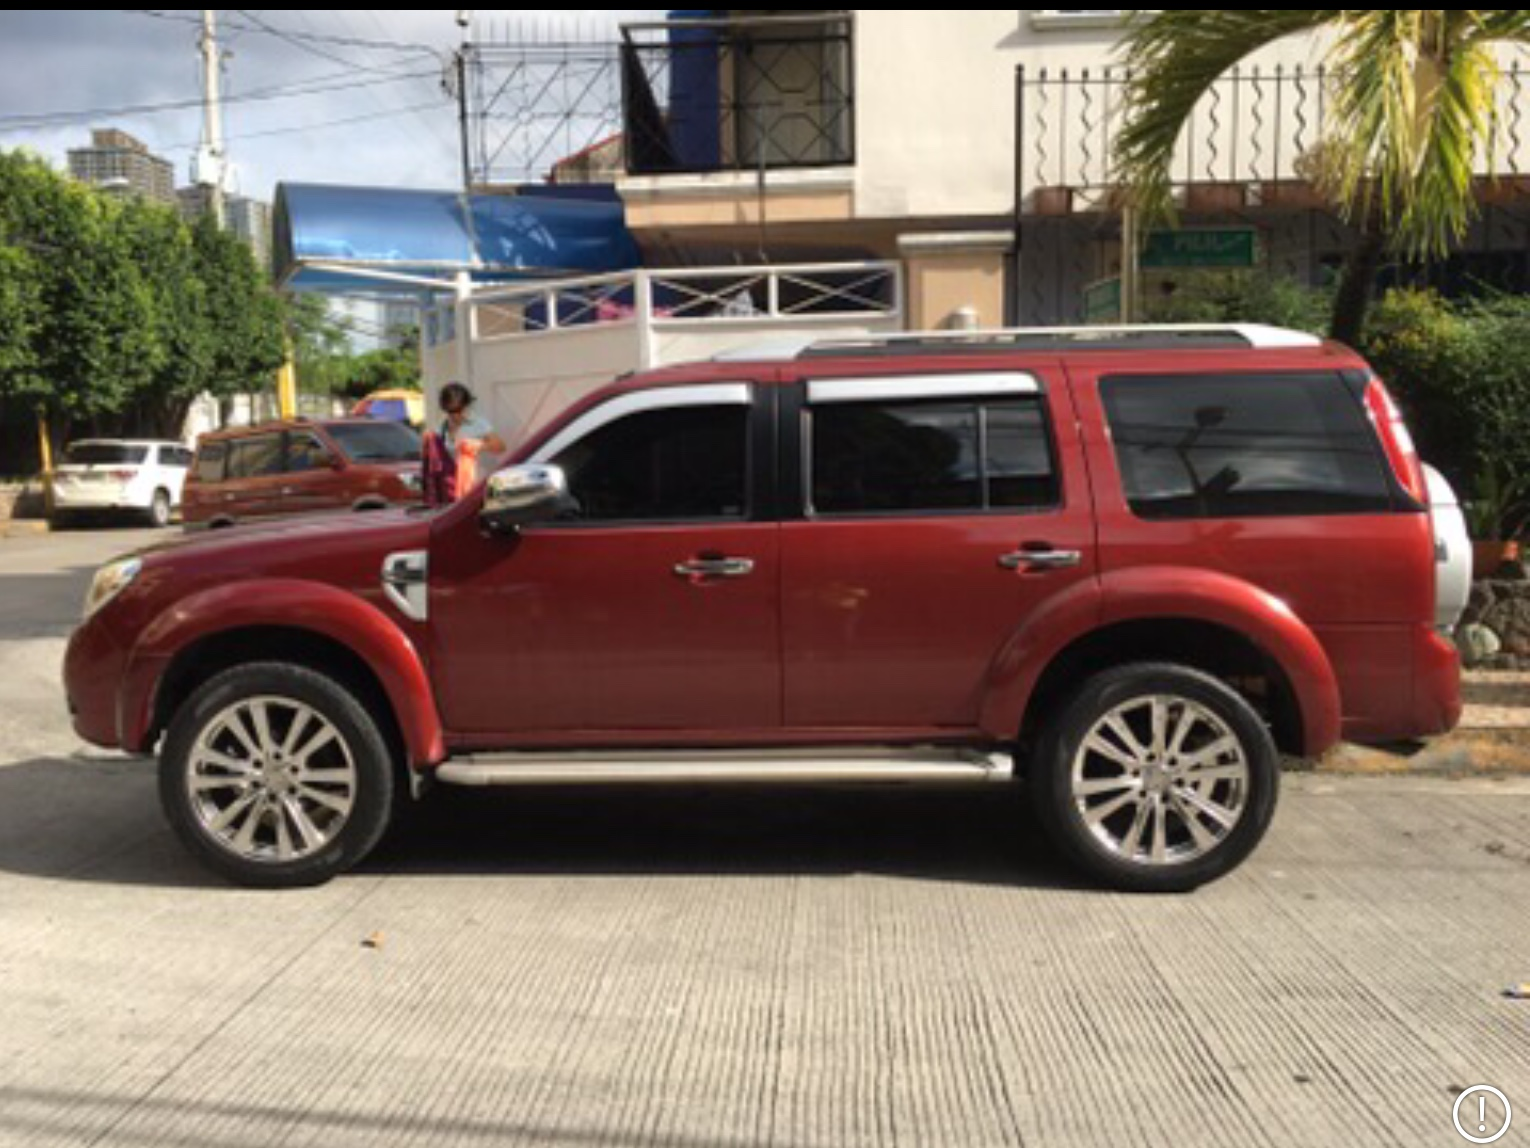 2013 Ford Everest Crdi Diesel Automatic  photo